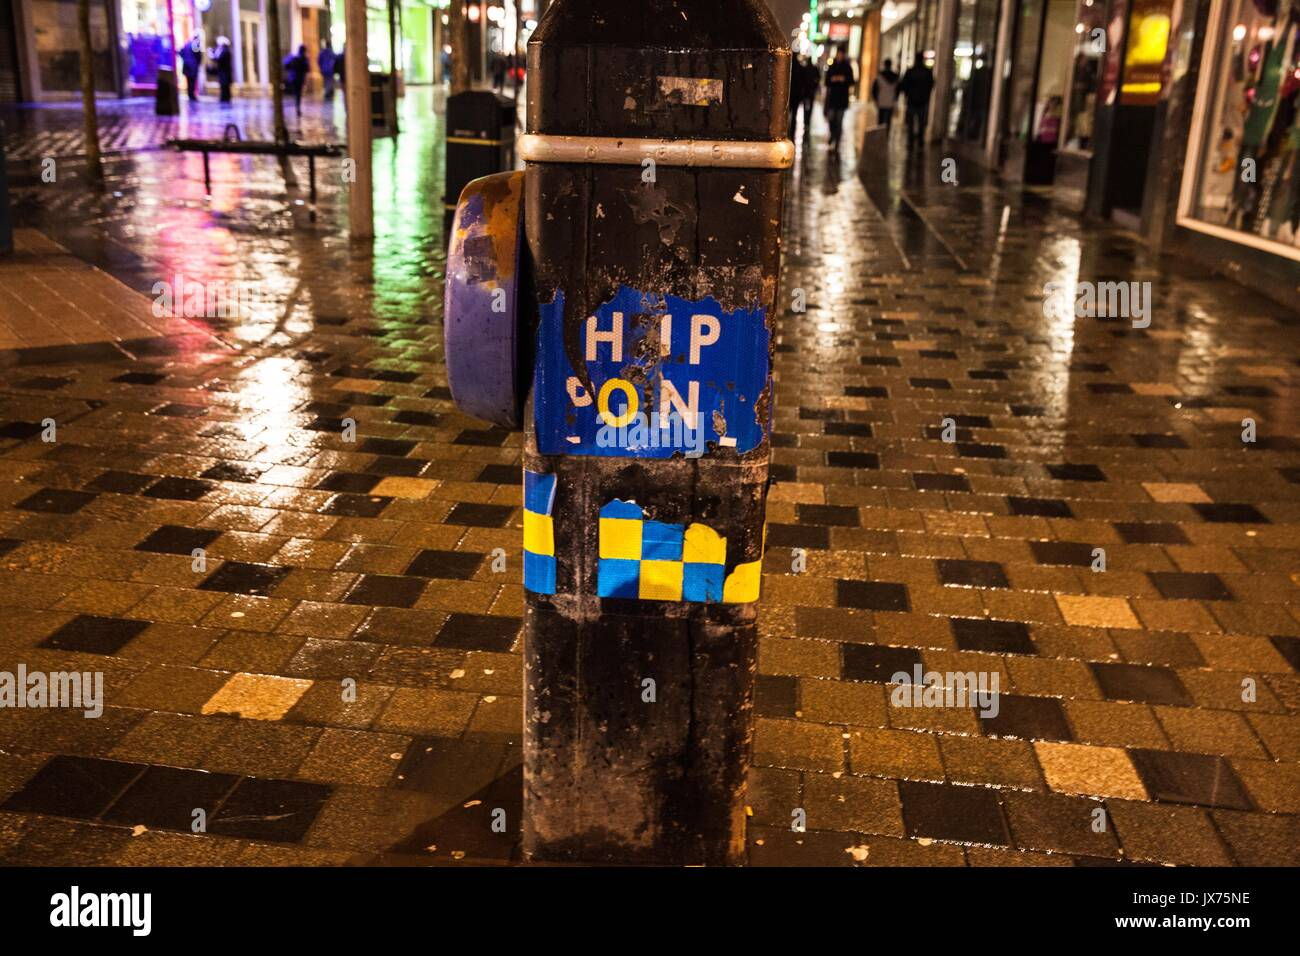 Partially ripped safety sign on lamp post in central Glasgow. - Stock Image